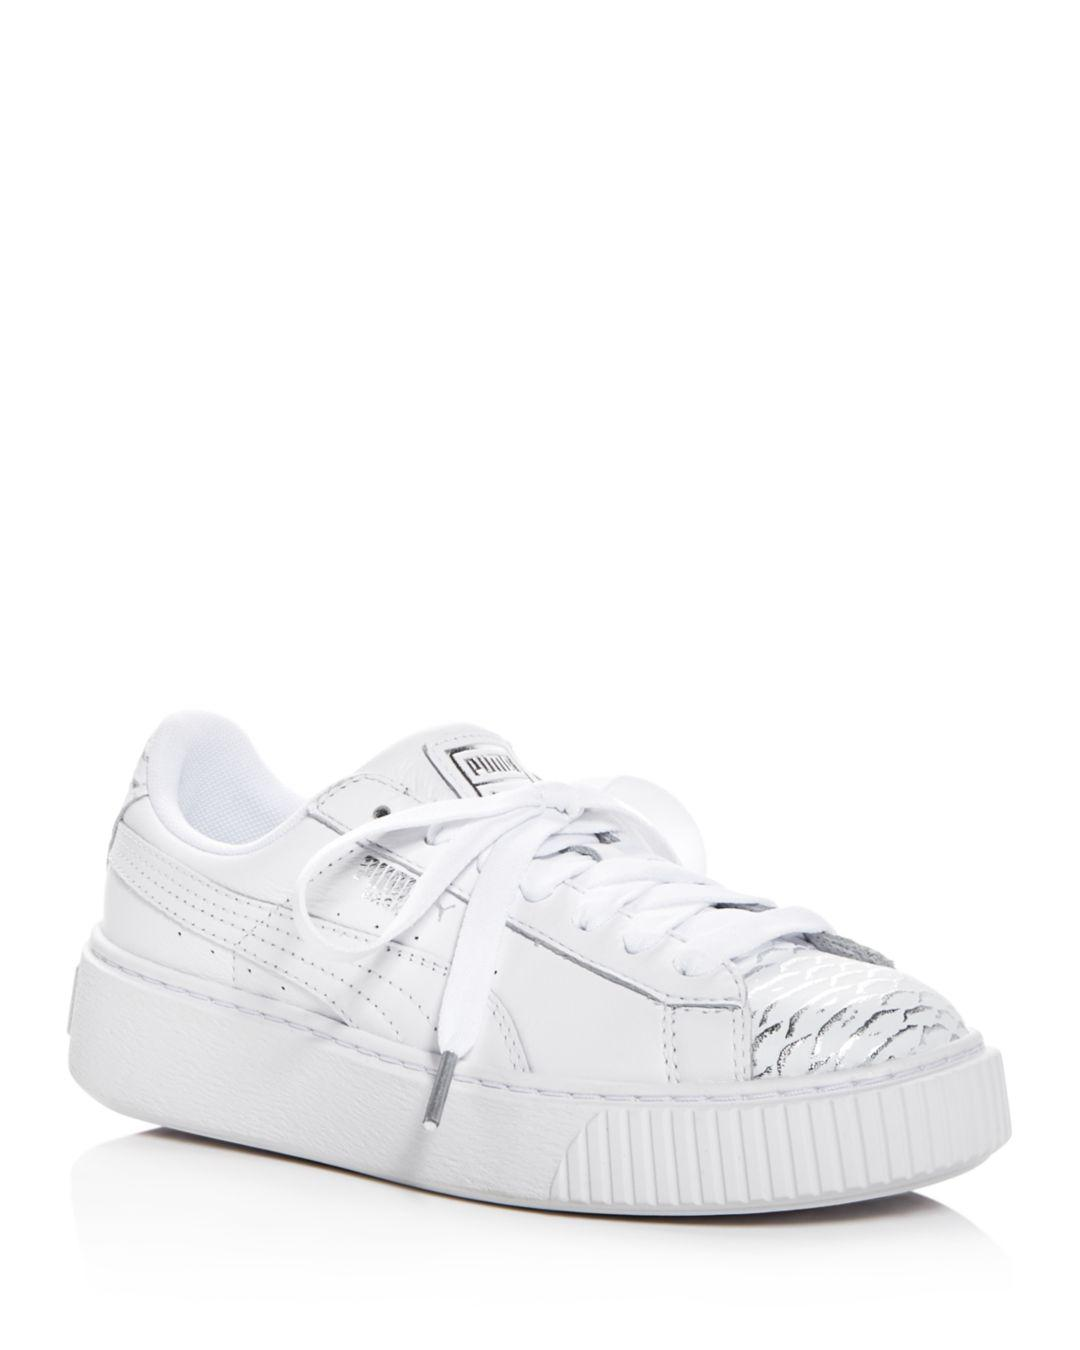 128e608b350e Gallery. Previously sold at  Bloomingdale s · Women s Platform Sneakers ...